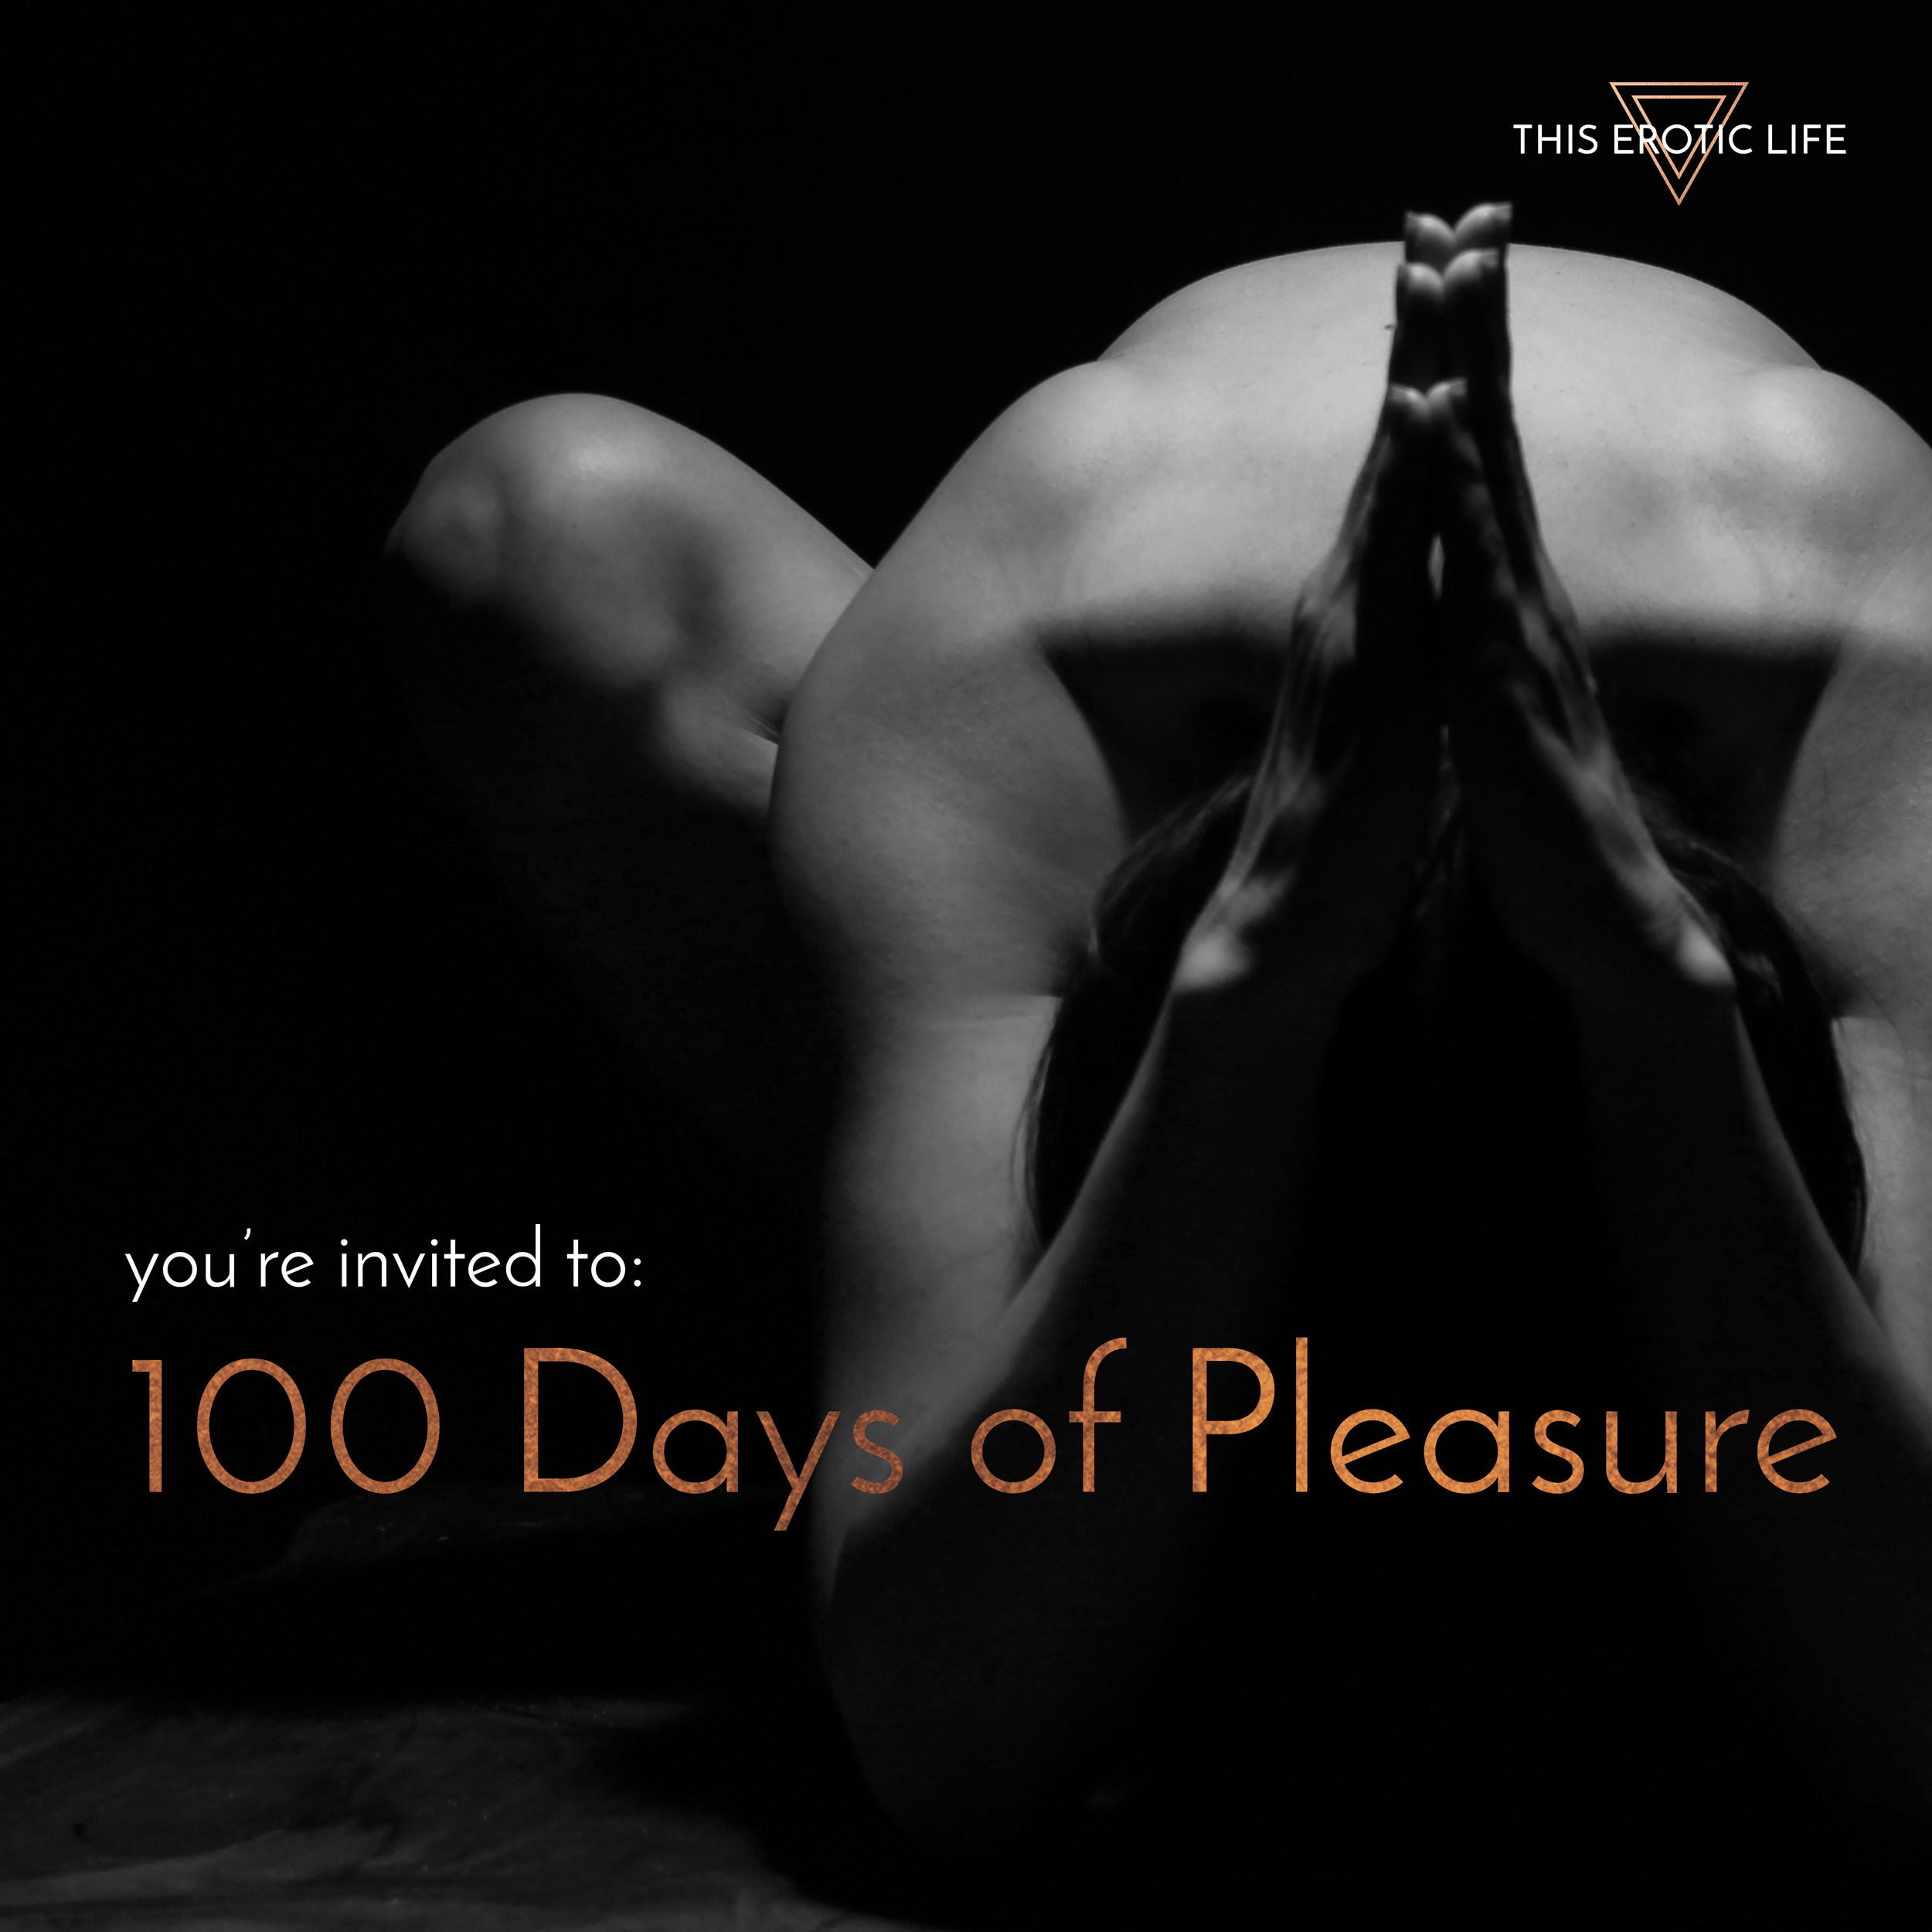 100-days-of-pleasure.png